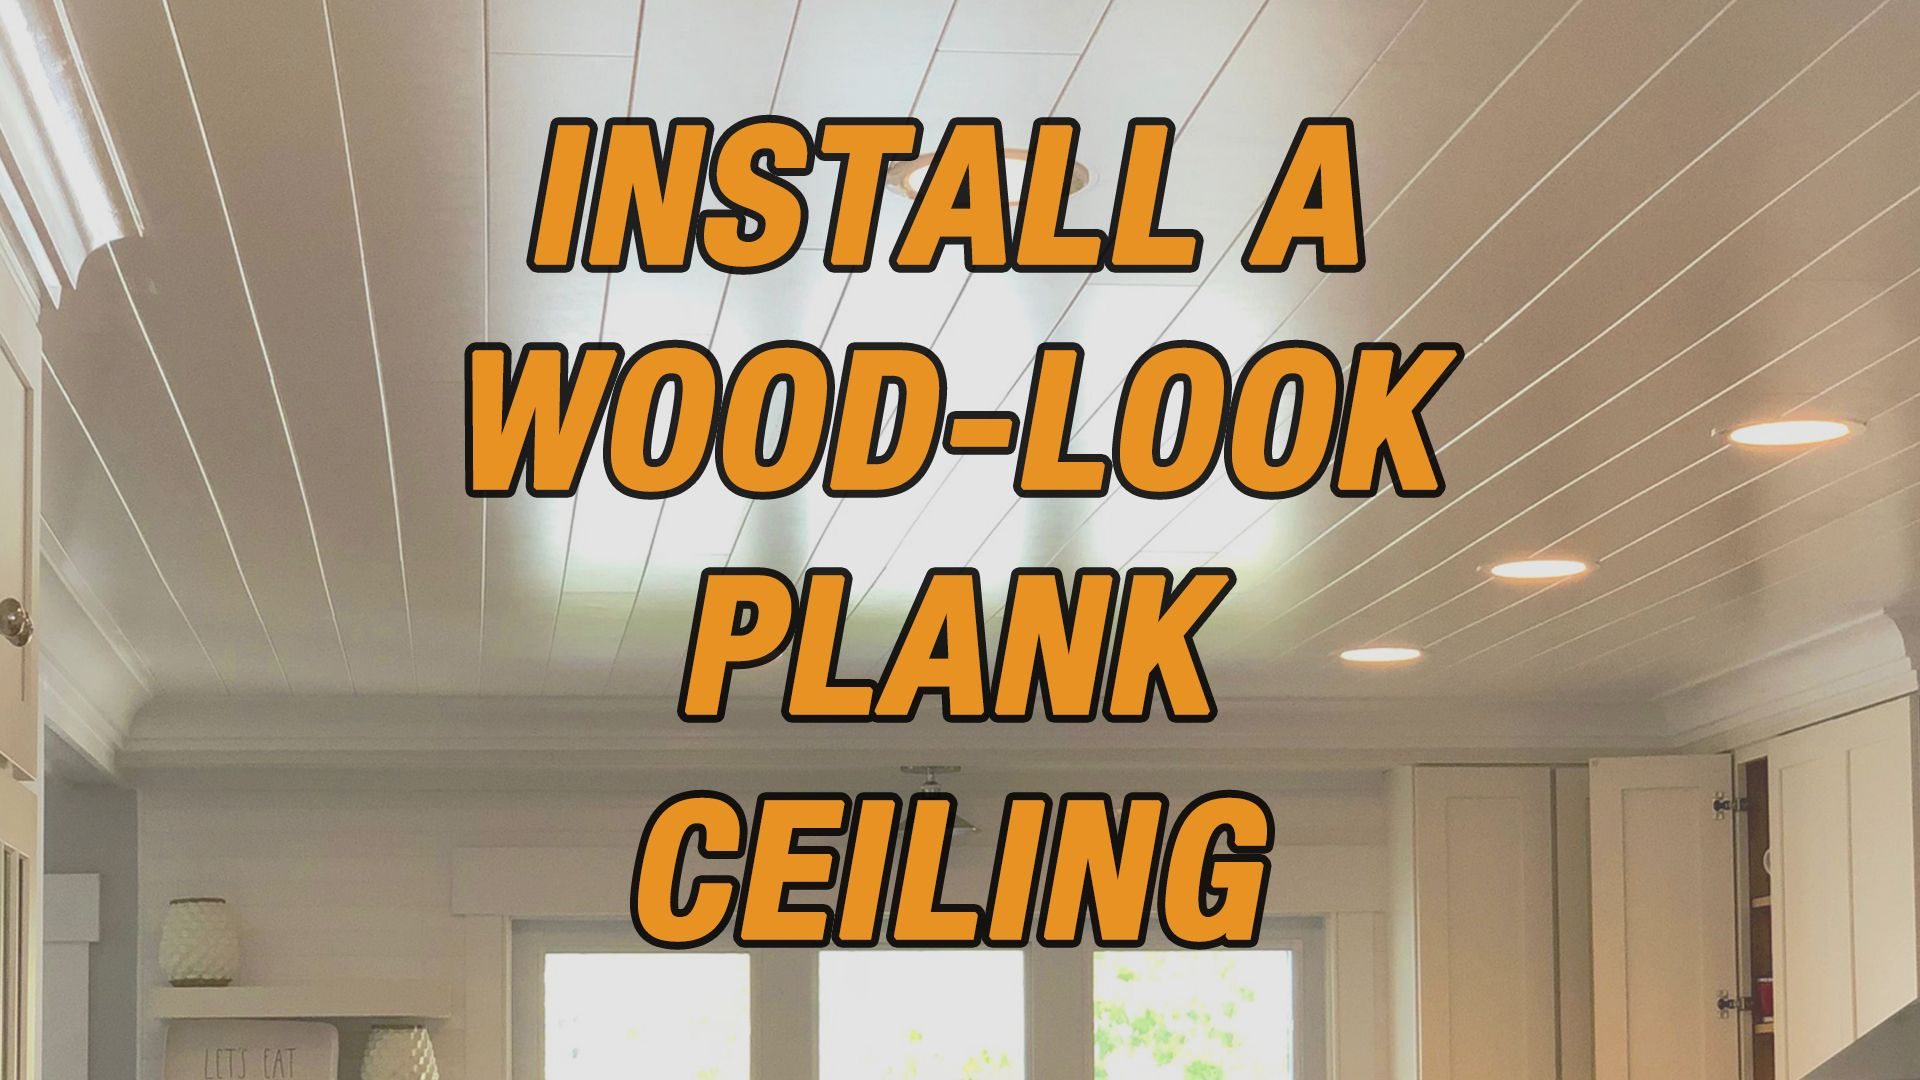 How To Install A Wood Look Plank Ceiling Plank Ceiling Floating Ceiling Diy Ceiling